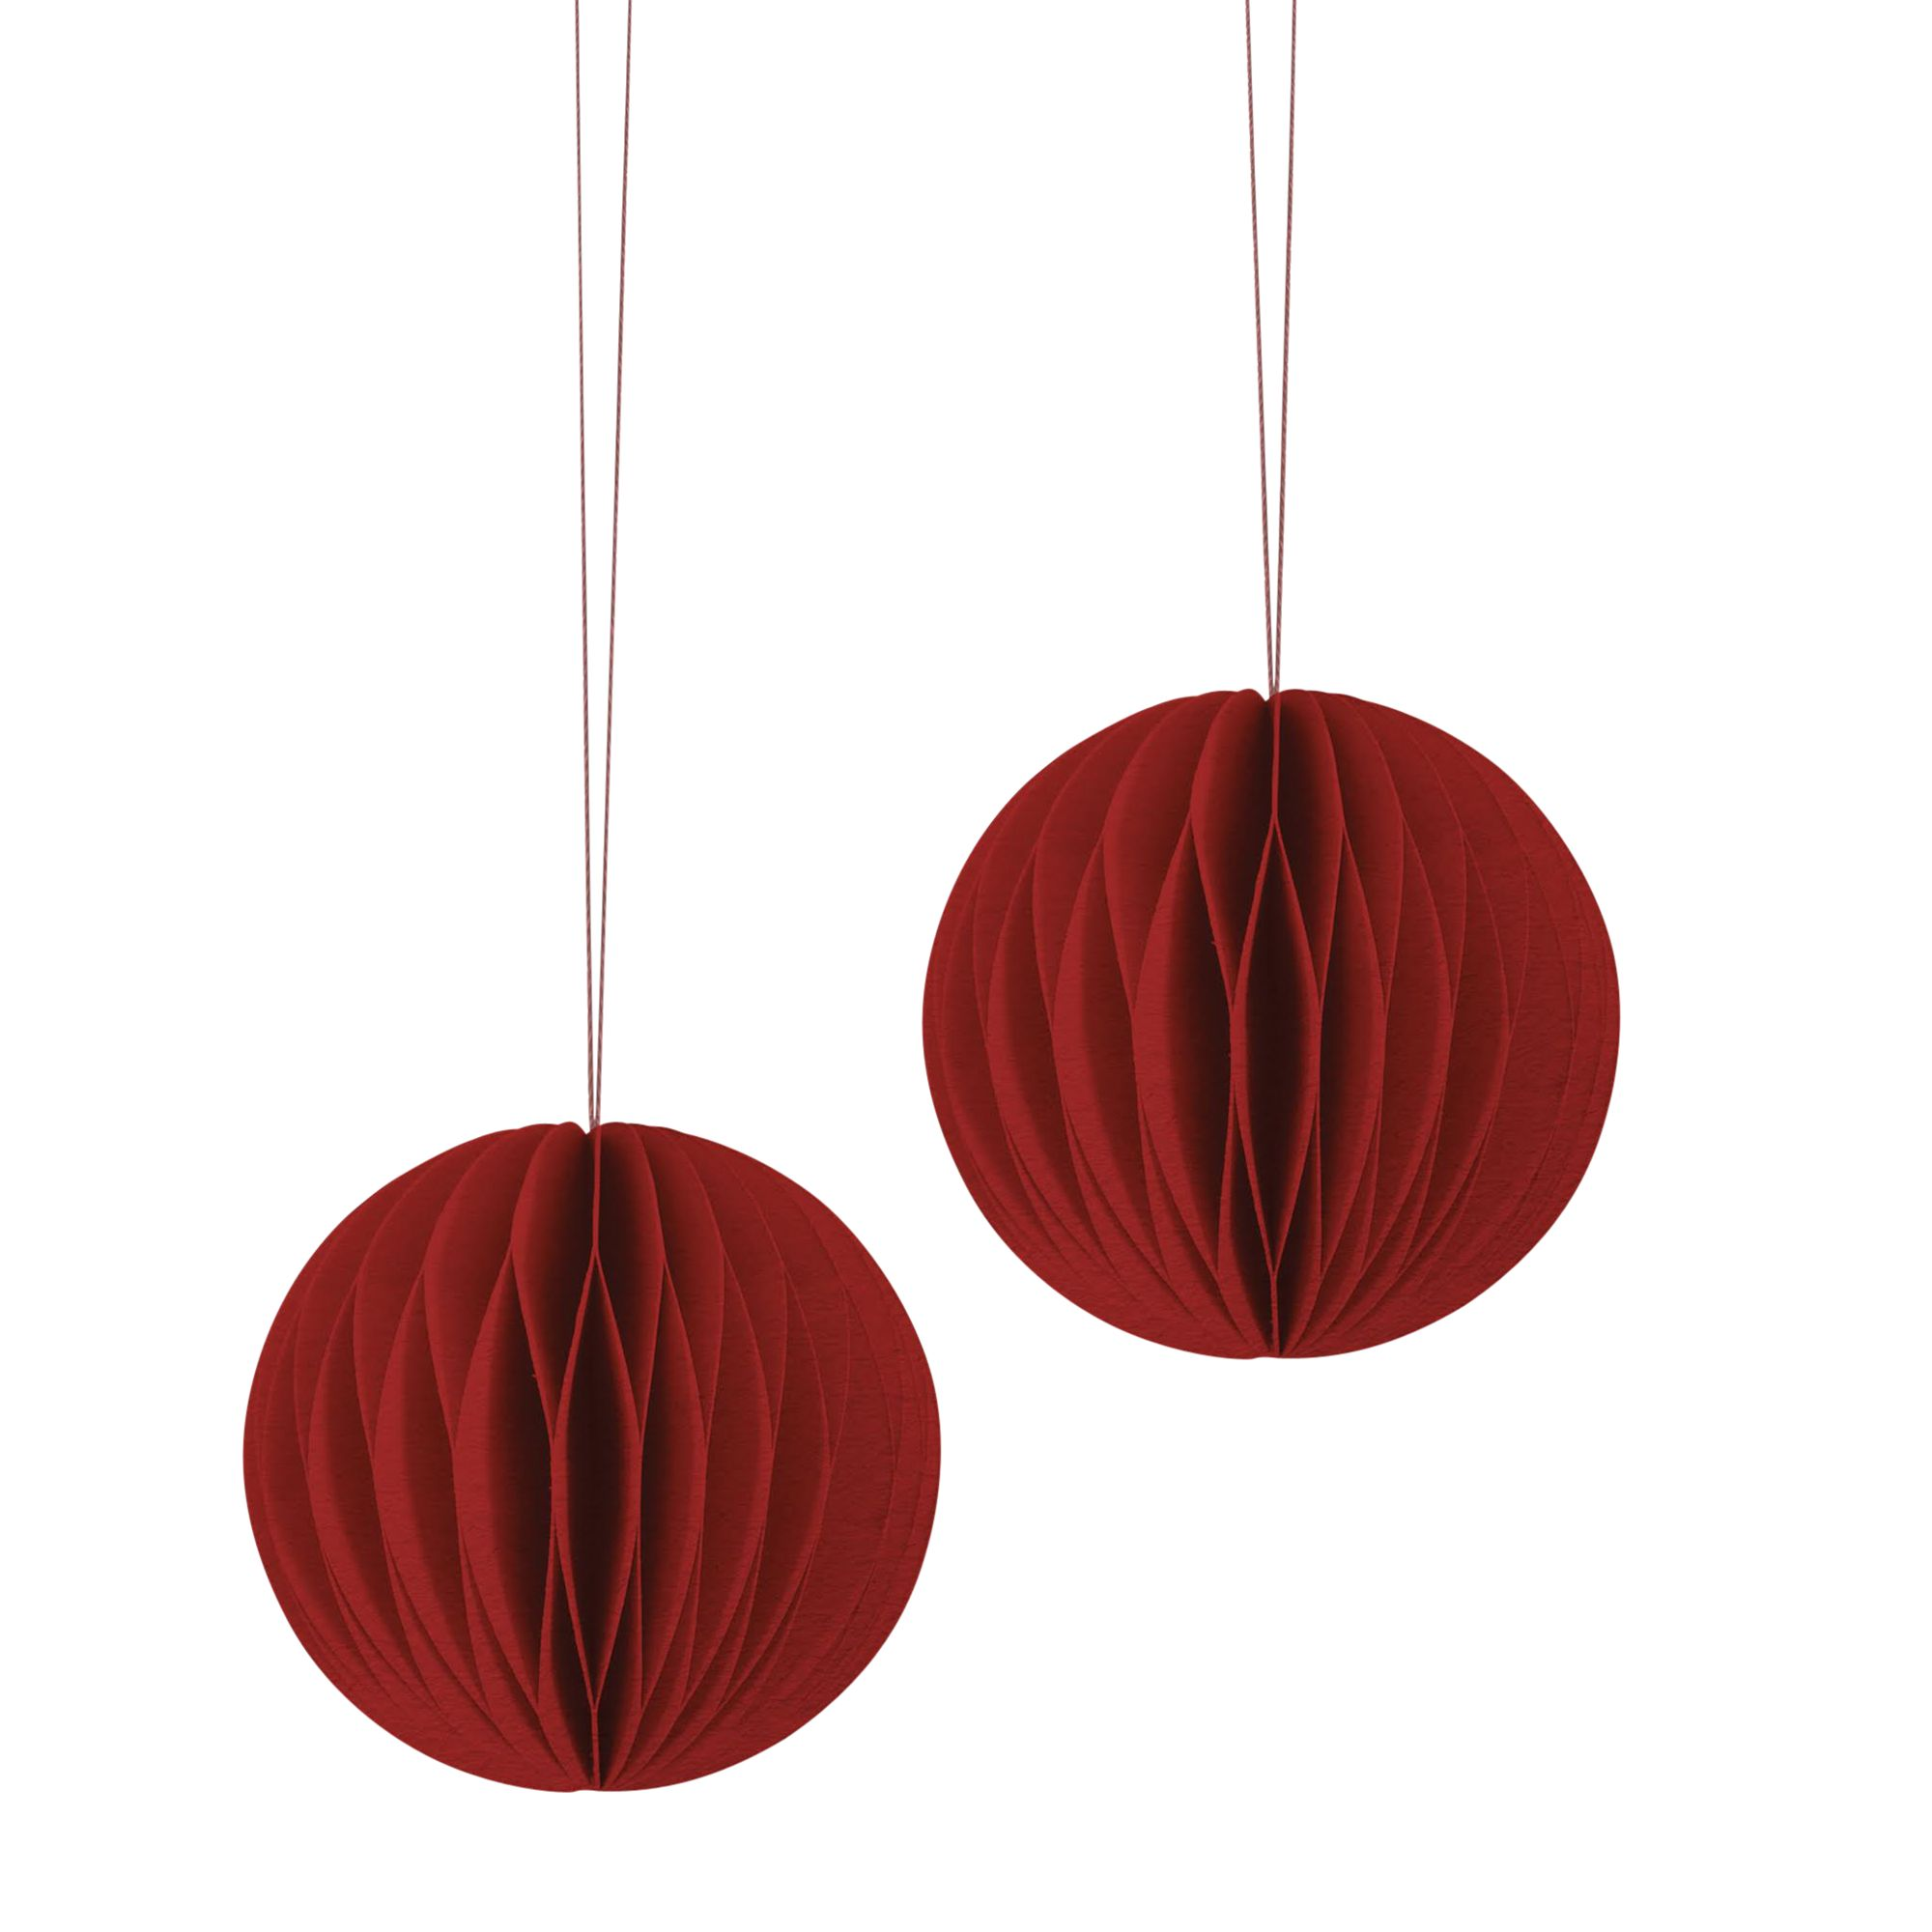 East of India East of India Paper Baubles, Pack of 2, Red